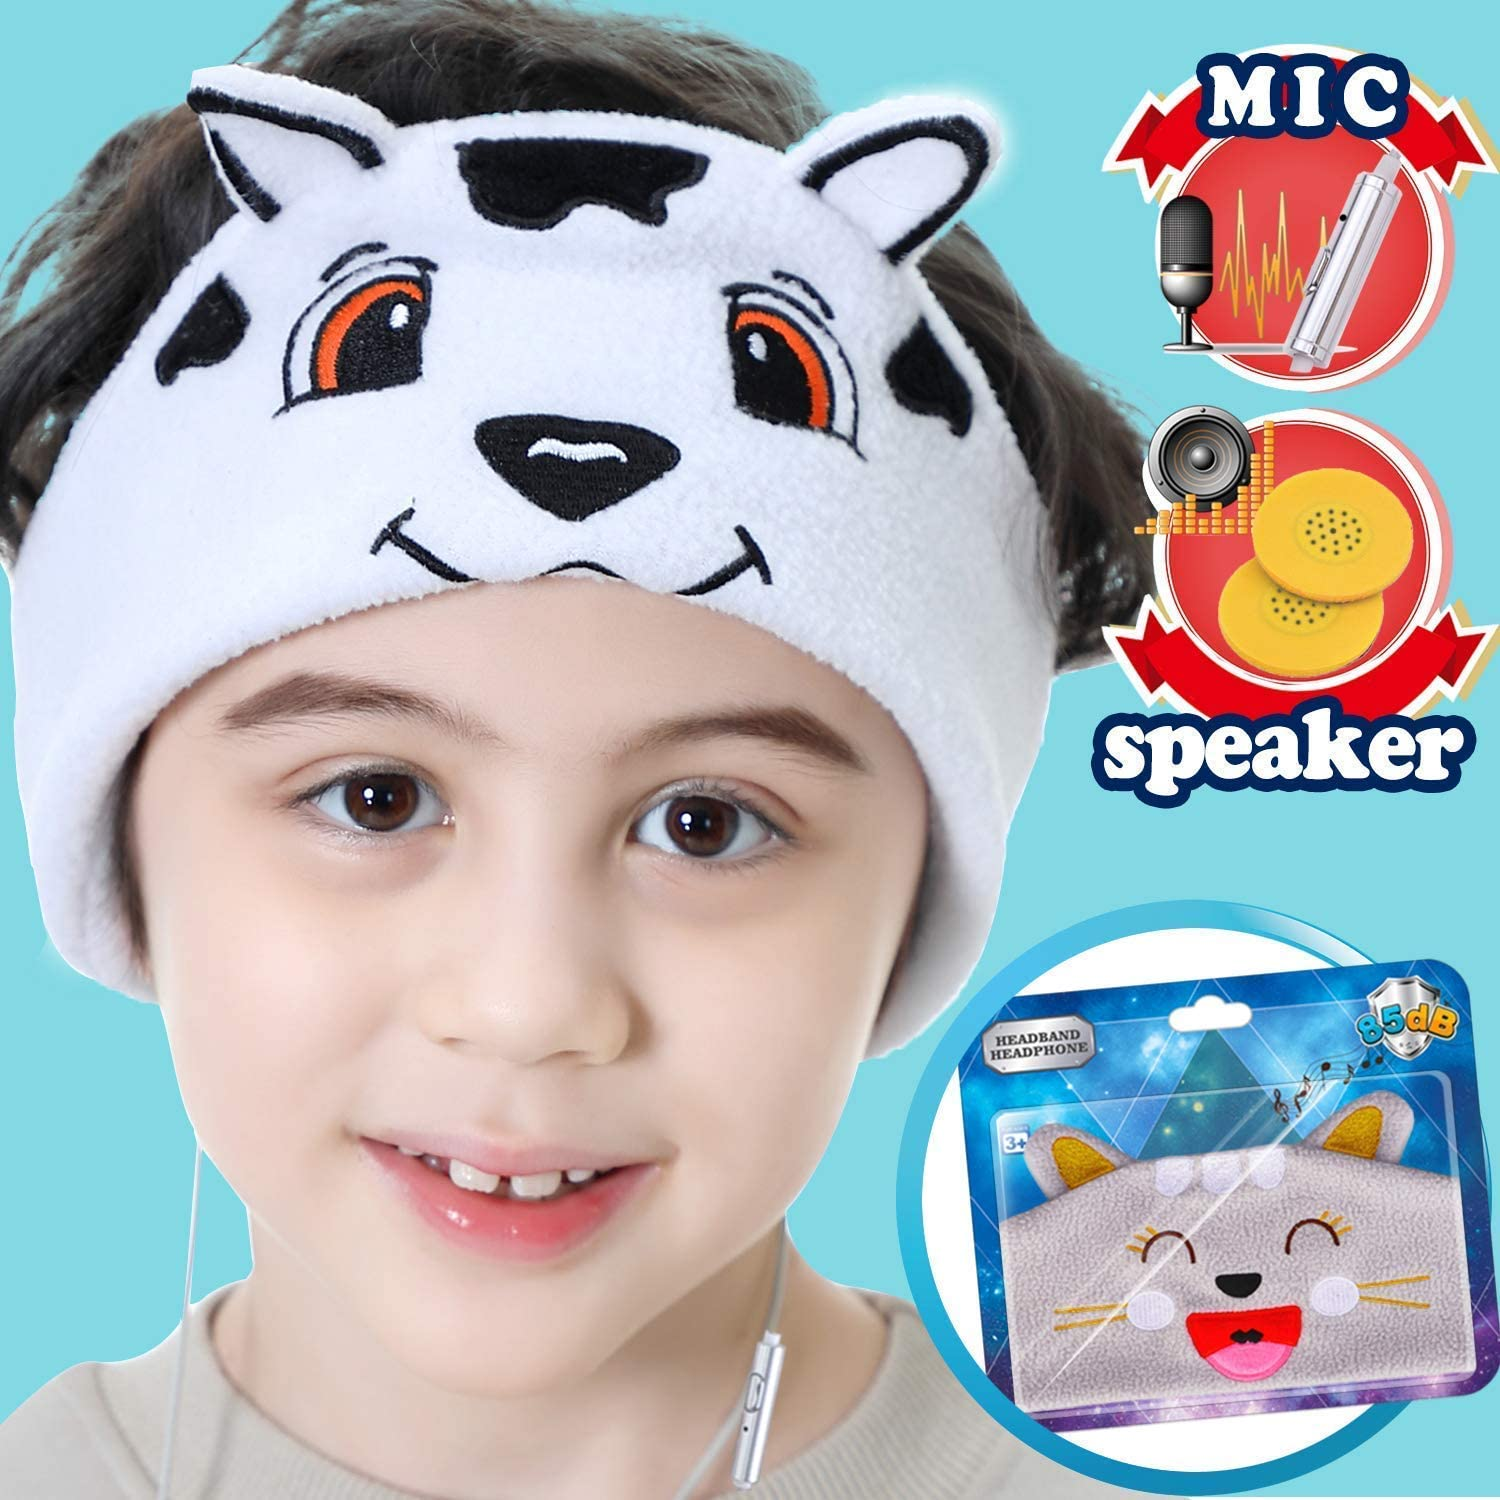 Kids Headphones Mic 85dB Volume Limited Ultra-Thin Speaker Soft Headband Headphone Toddler Teen Girls Boy Foldable Headset Audio Adjustable Wired On Earphones Christmas Winter Supplies, Dog